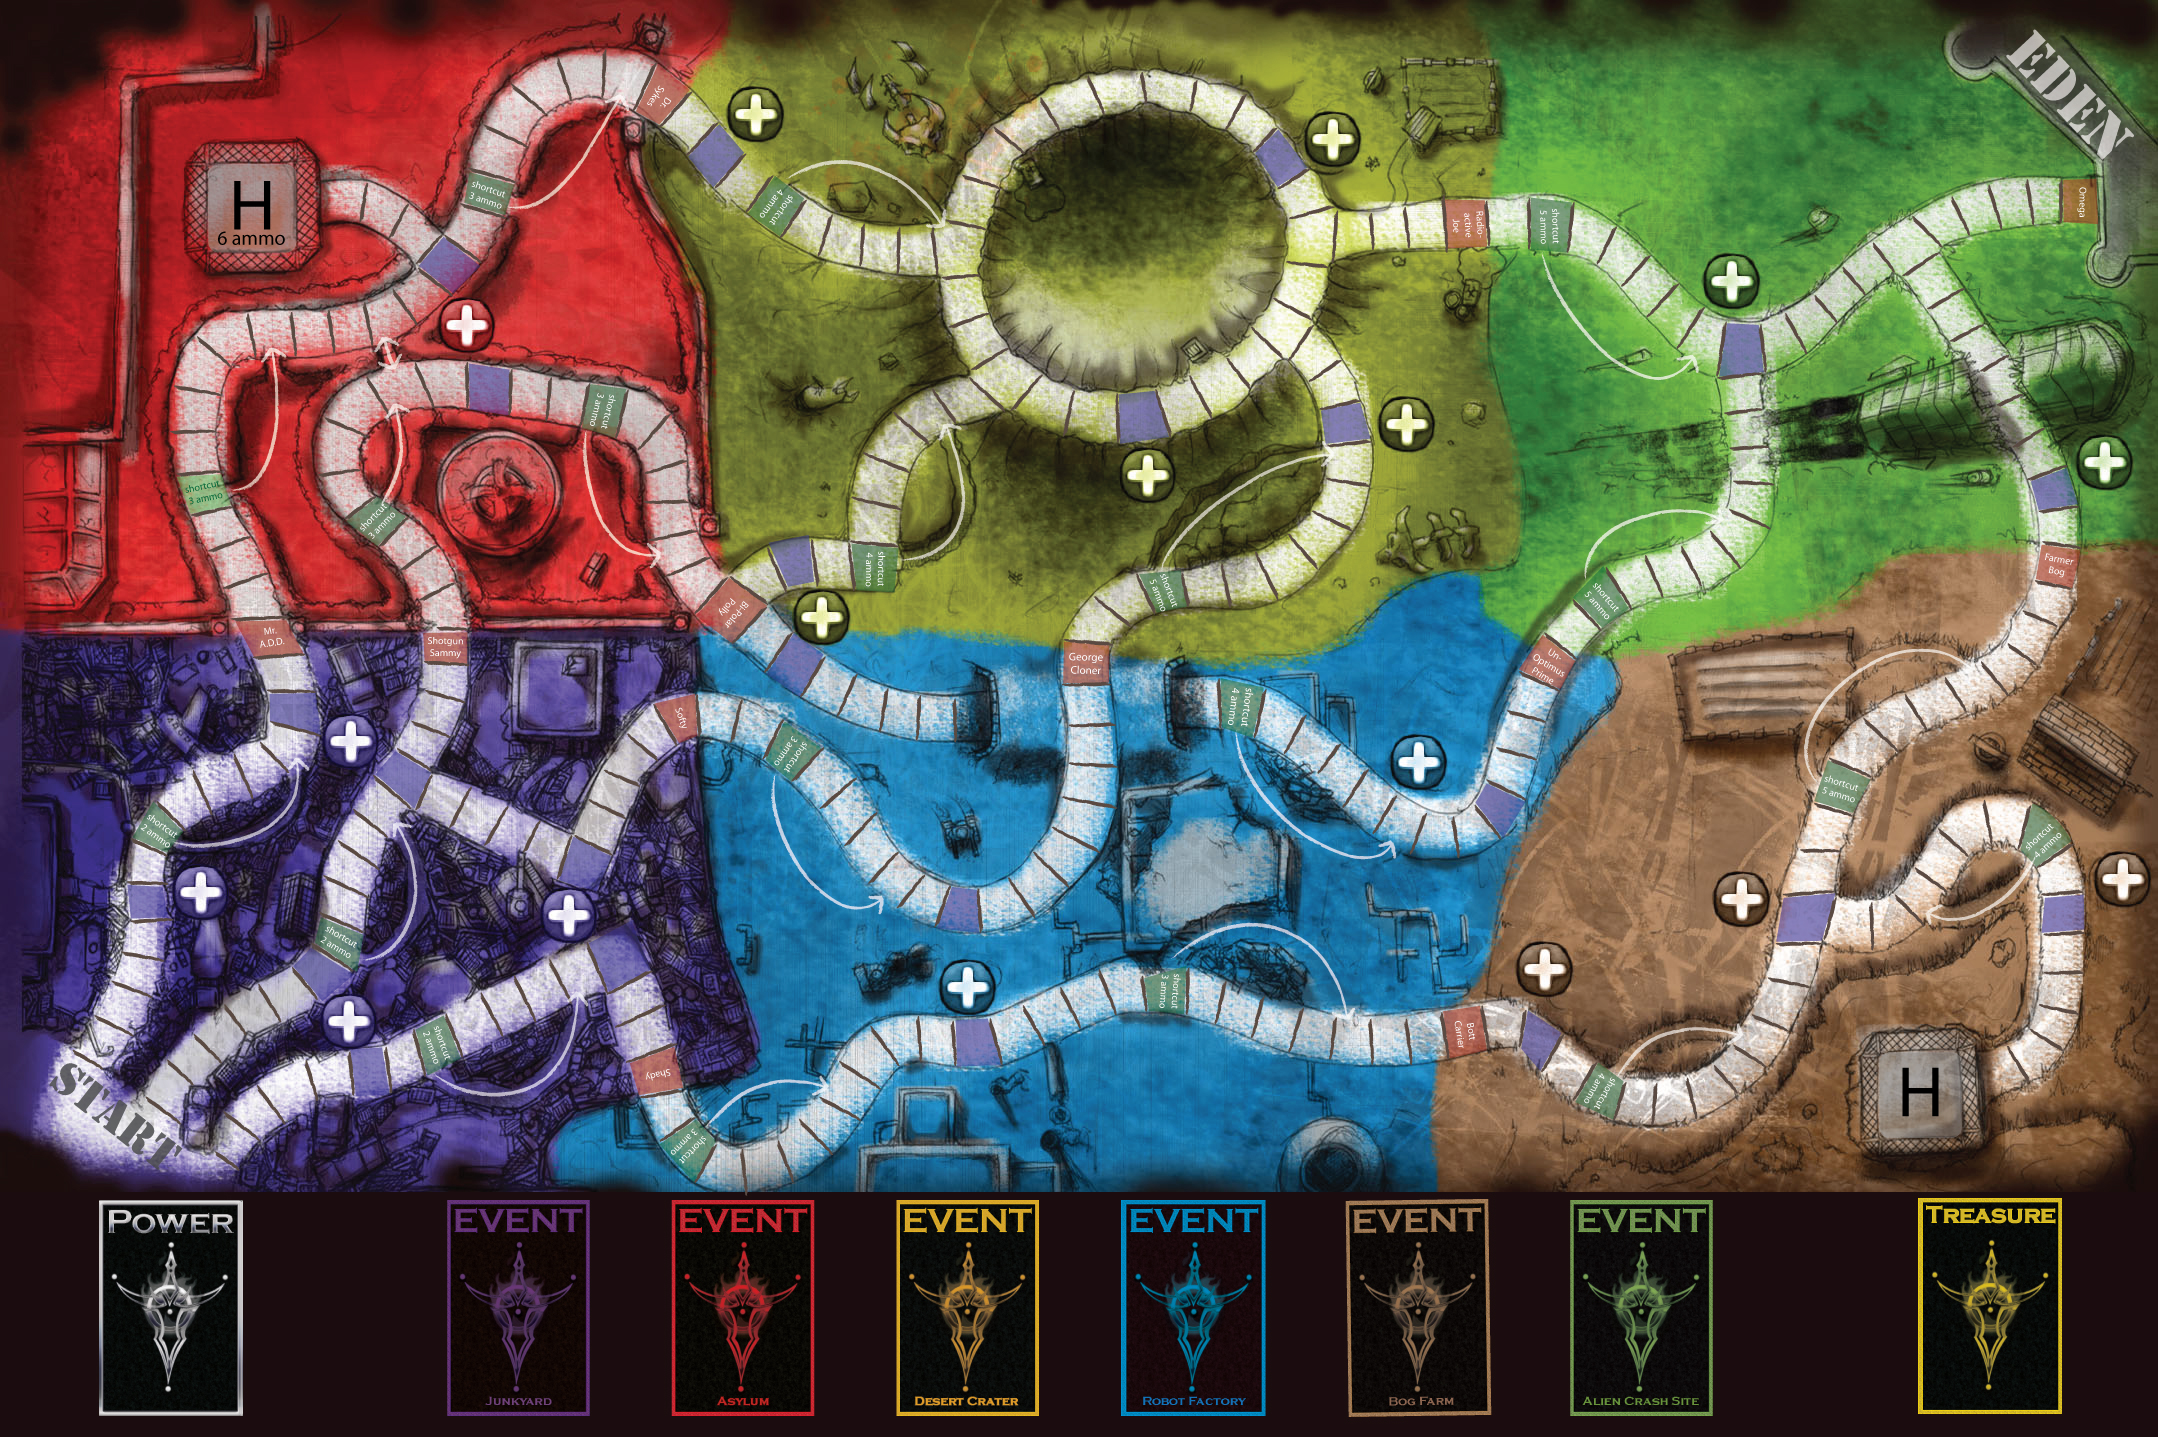 Eden Board Game by Charles Adams at Coroflot.com